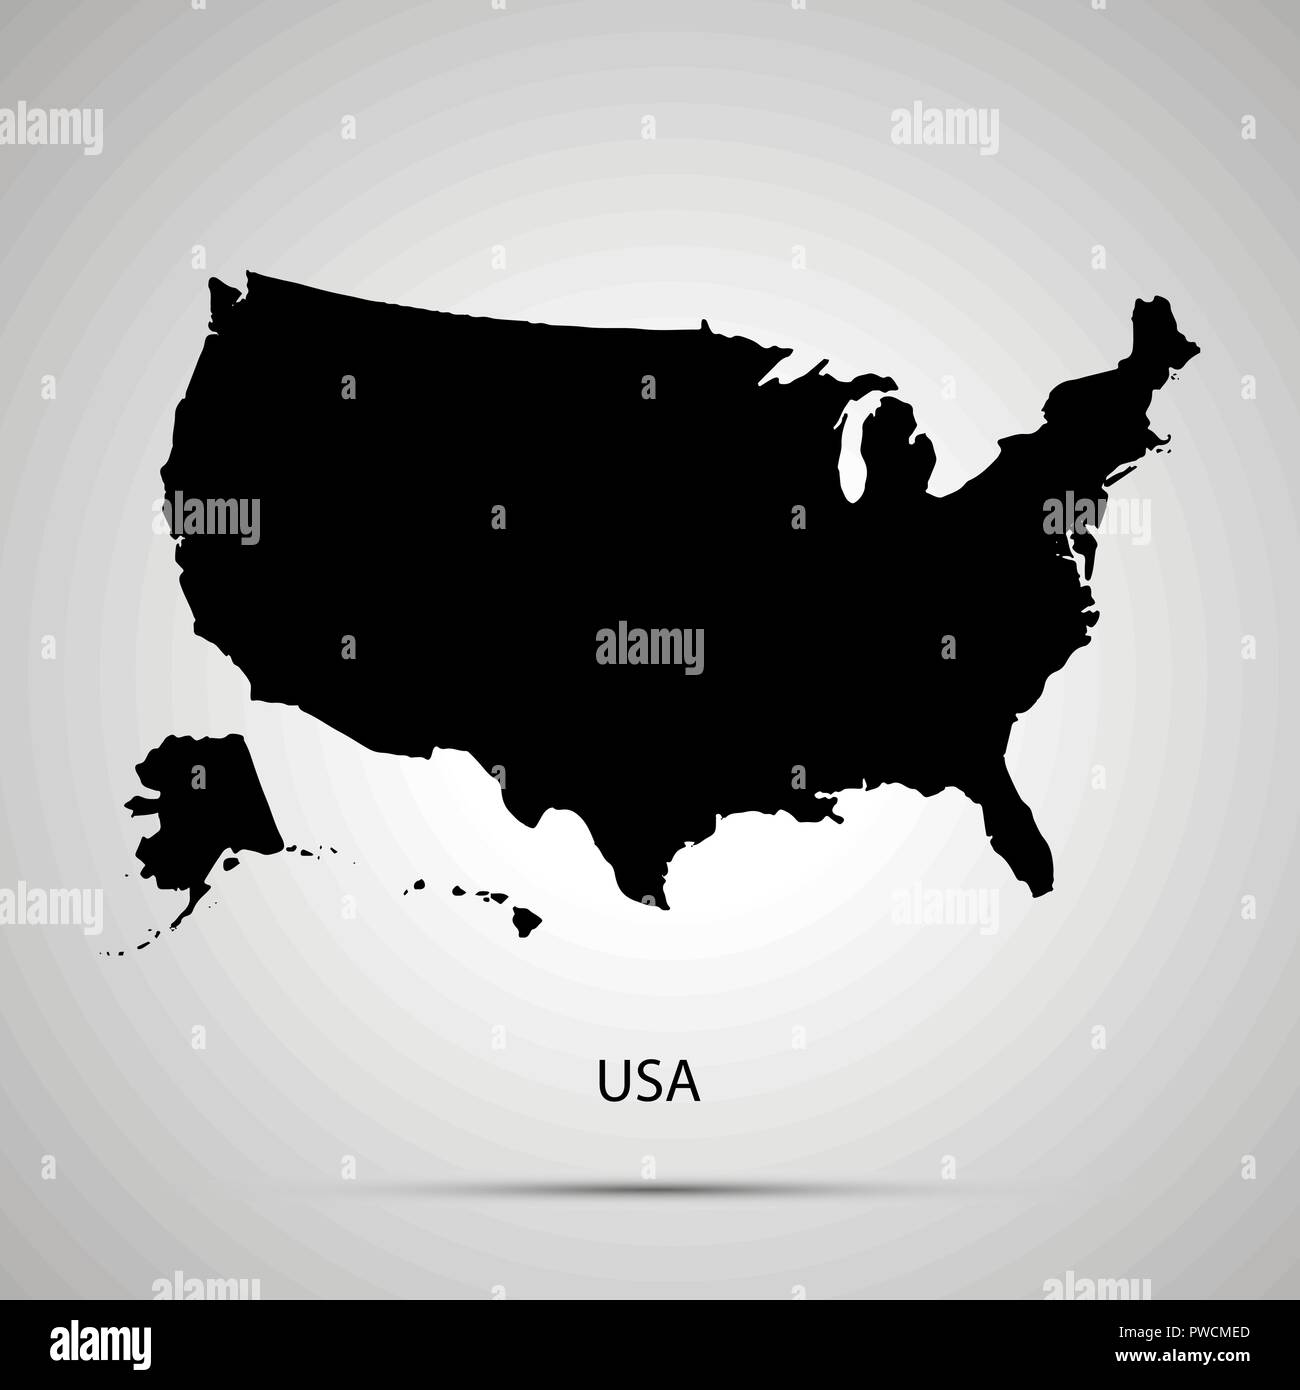 United States On America Country Map Simple Black Silhouette Stock